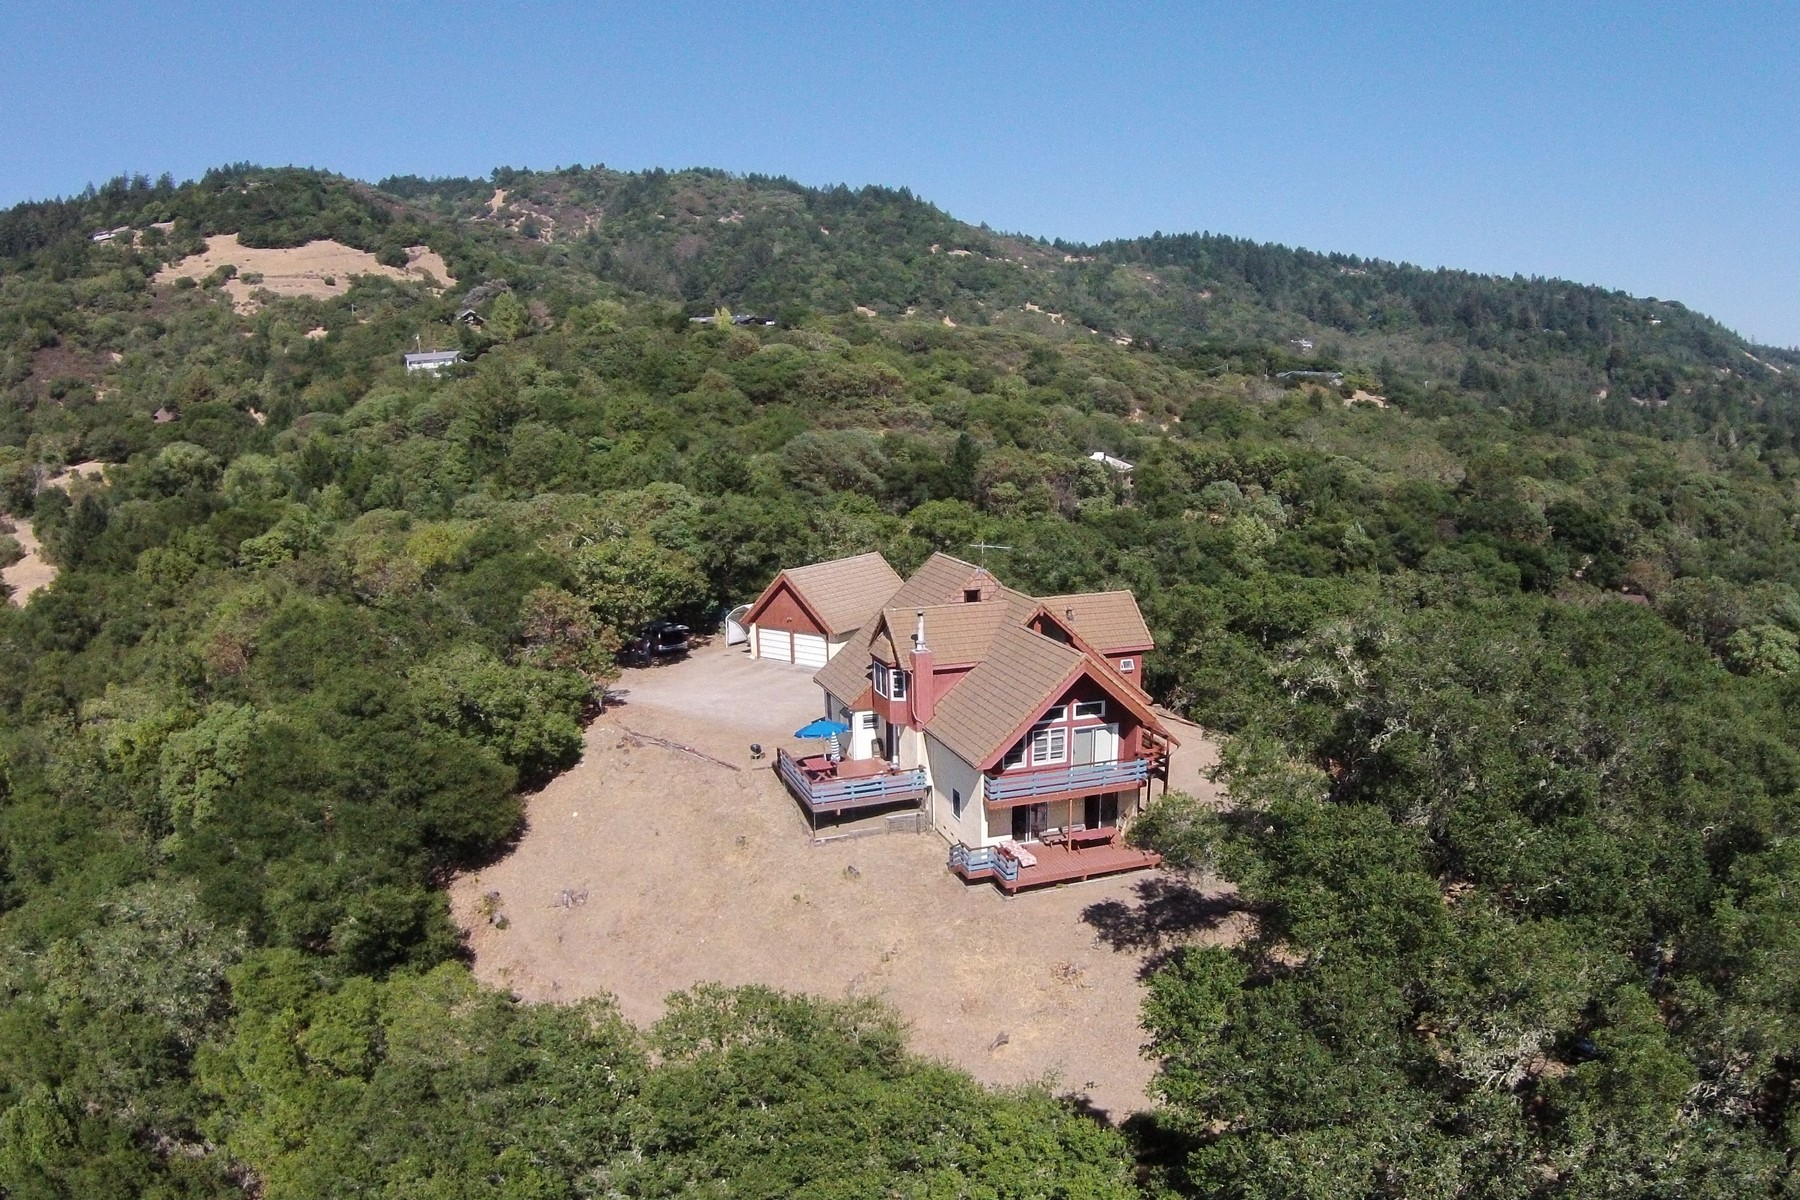 Single Family Home for Sale at 10+/- Acre Riebli Valley Country Property 5225 Winter Creek Road Santa Rosa, California, 95404 United States